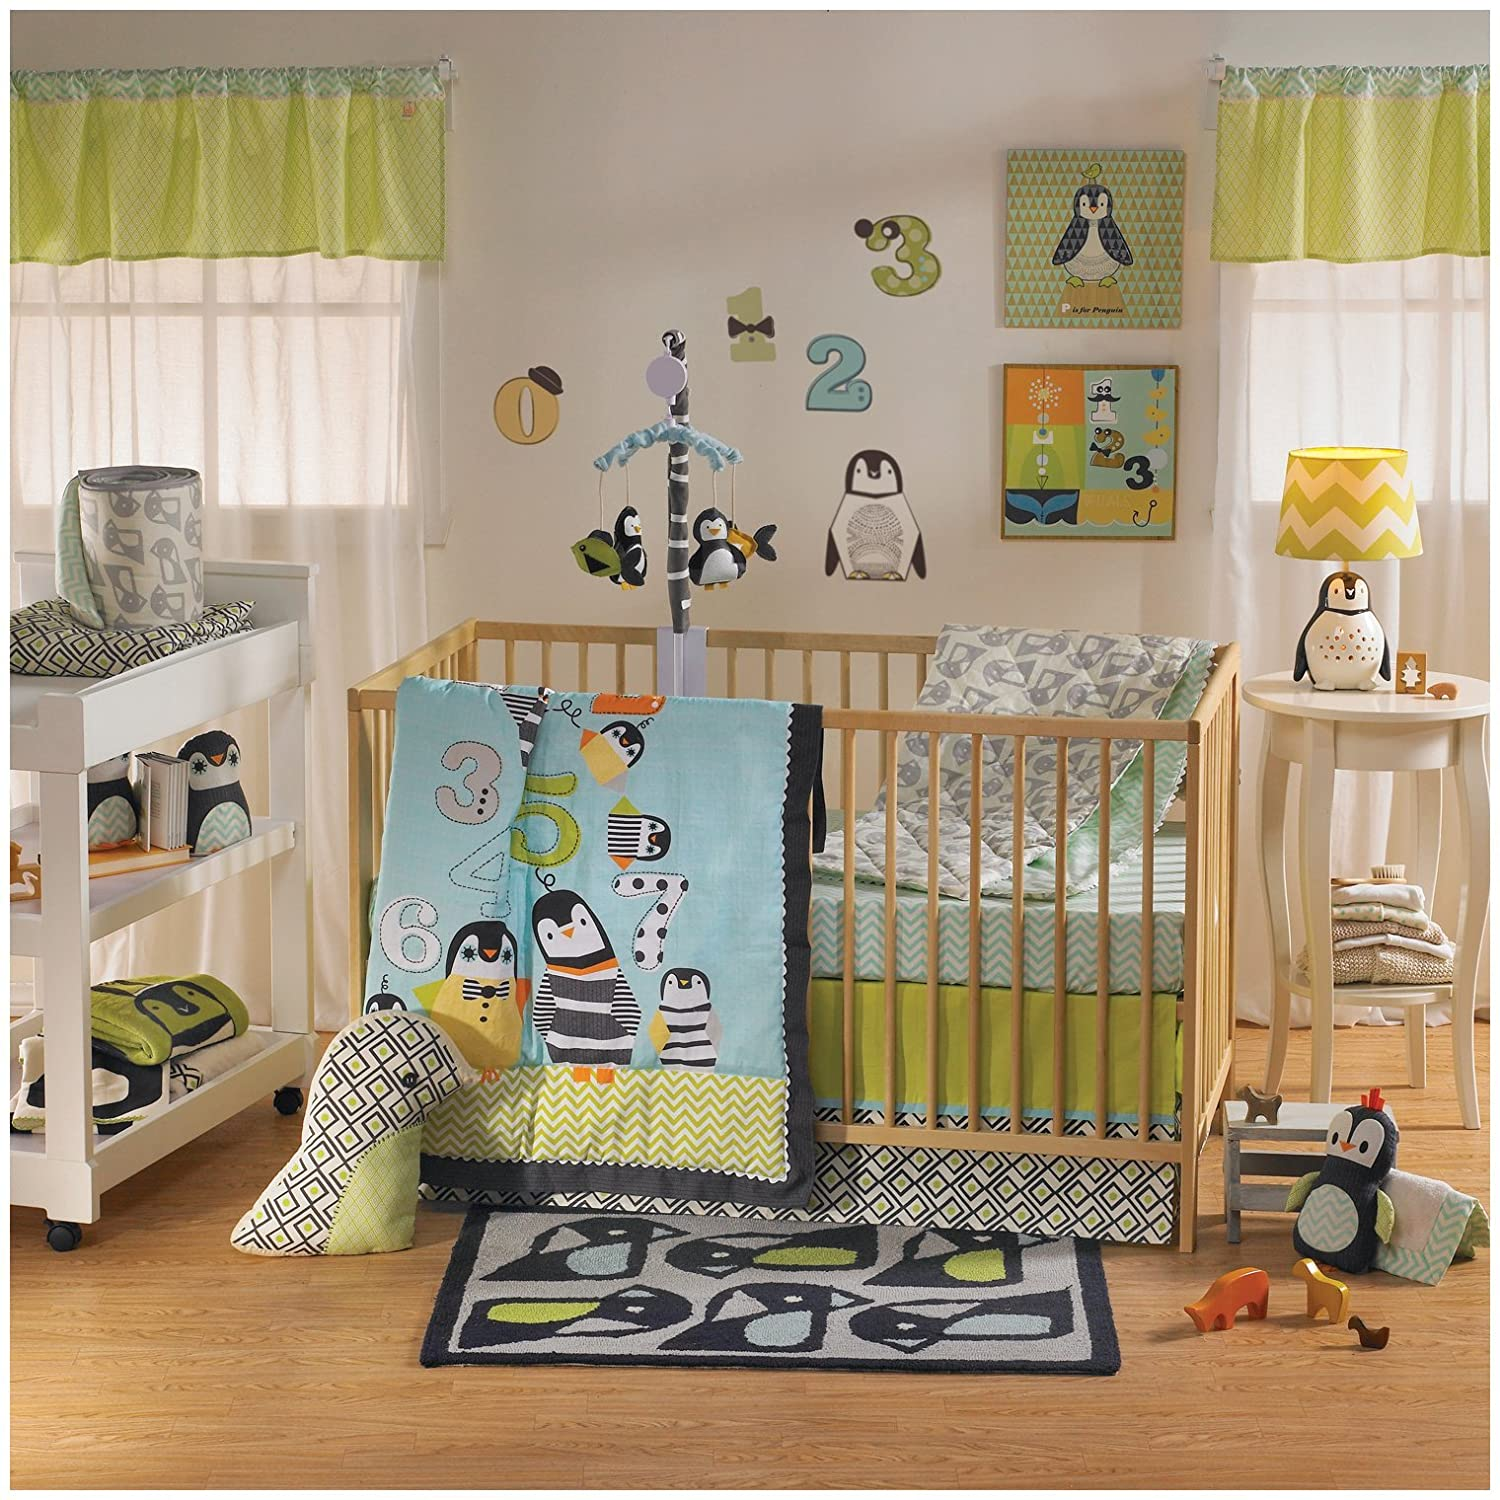 Lolli Living Phinley Crib Bedding and Accessories - Baby ...